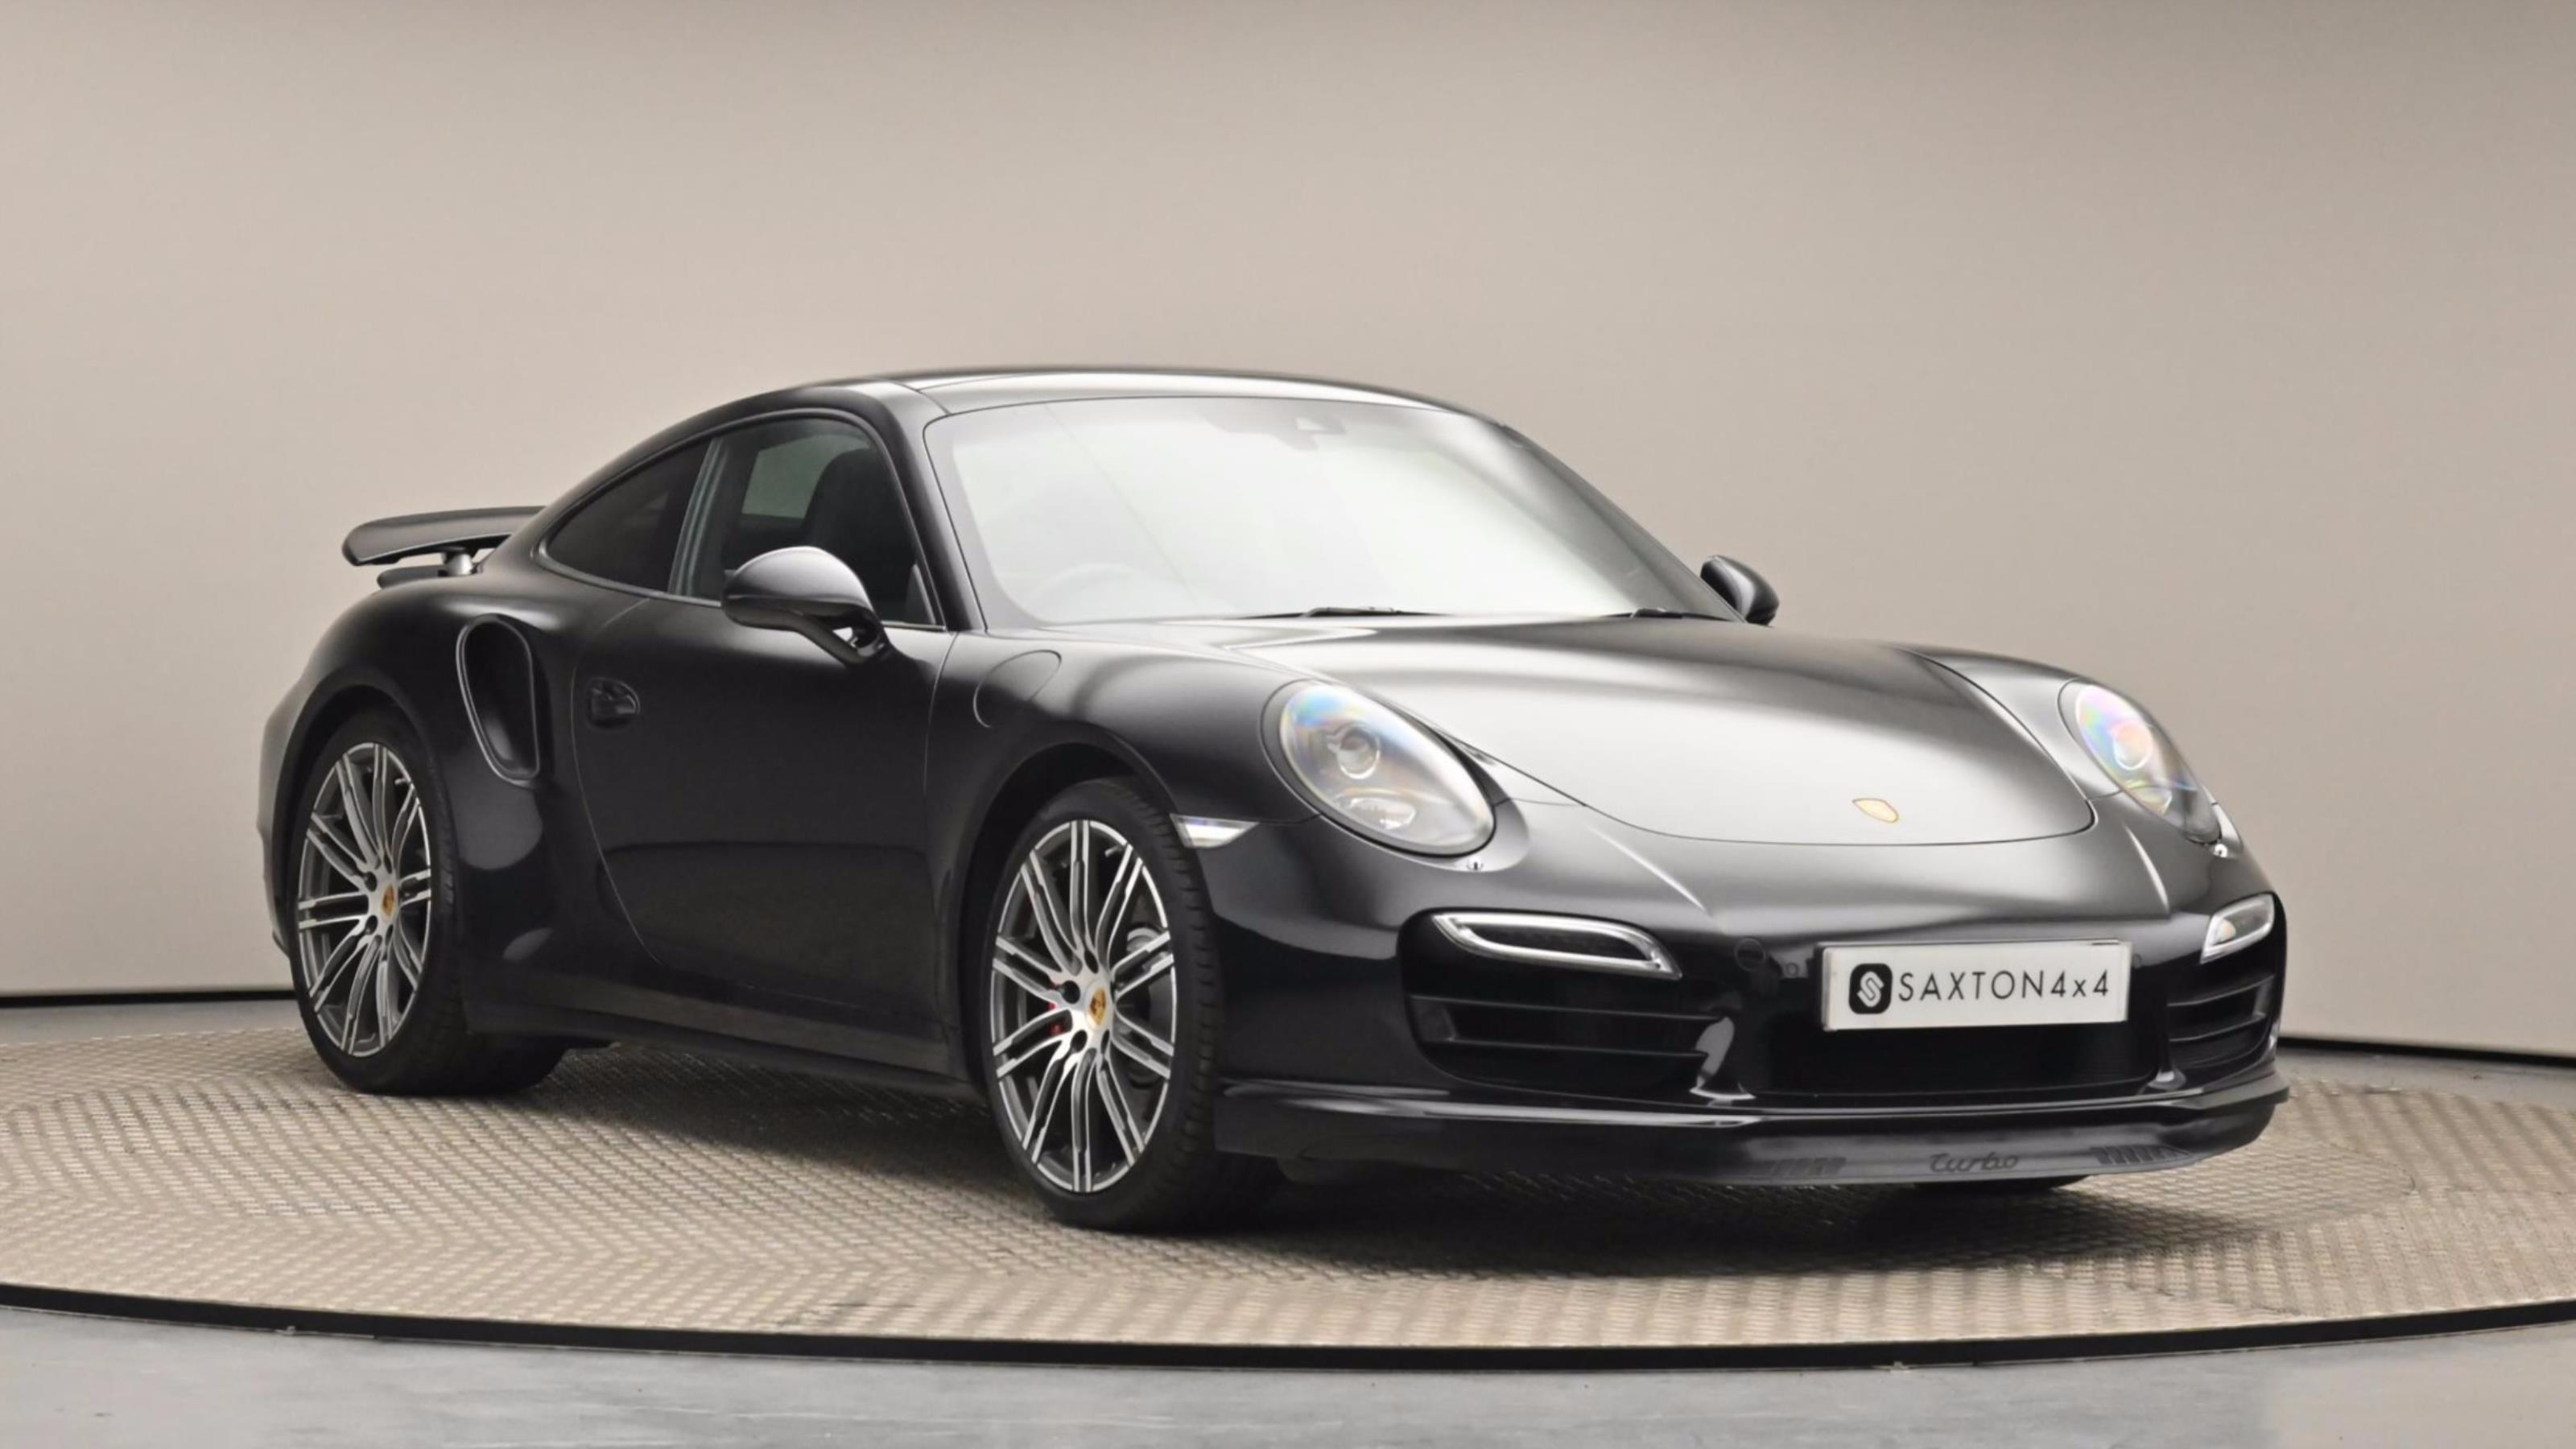 Used ~ Porsche 911 2dr PDK Black at Saxton4x4